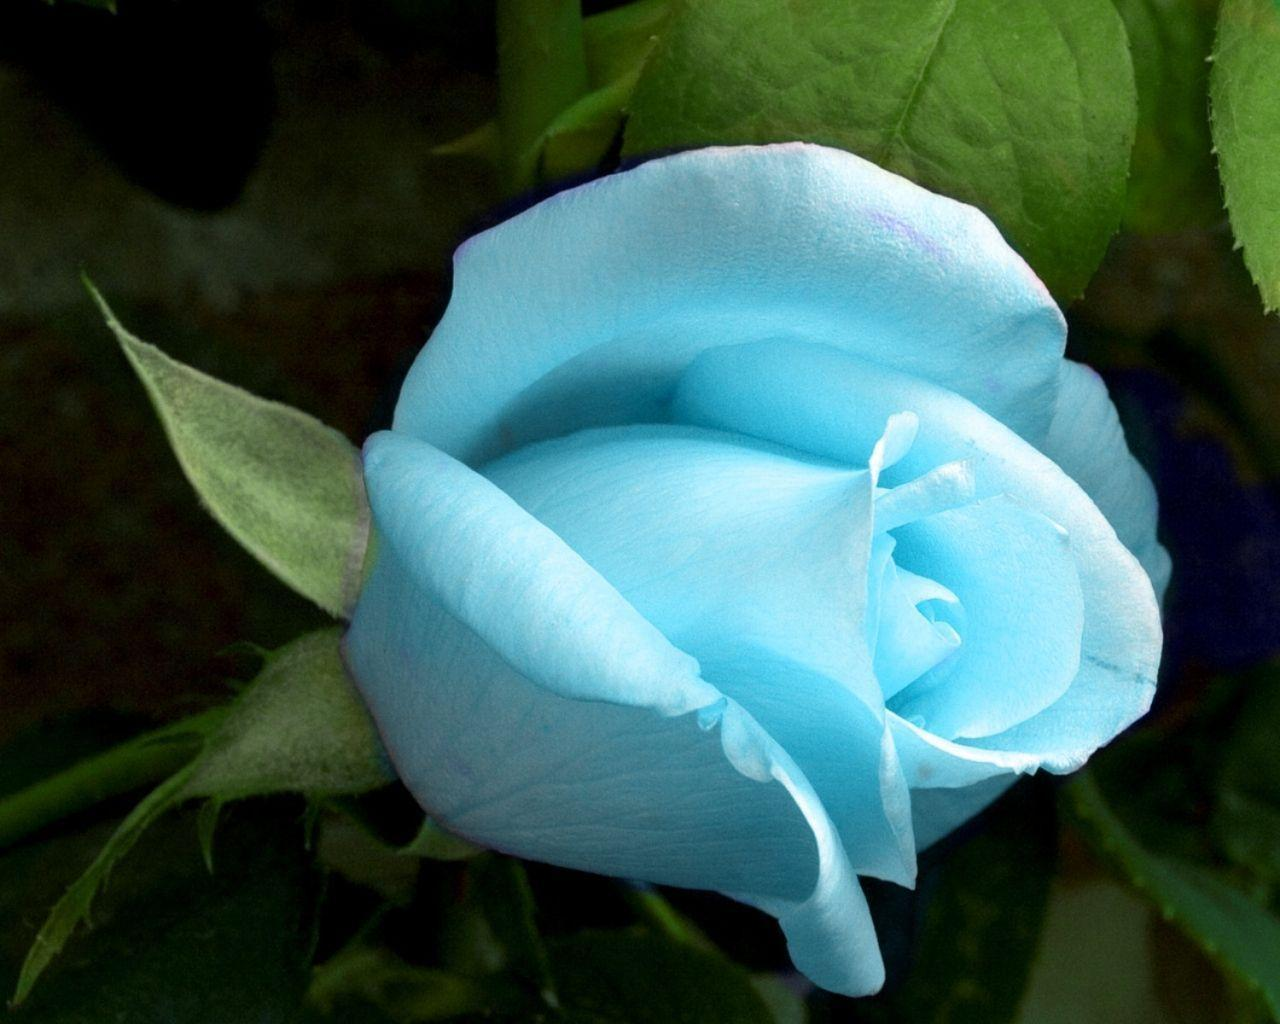 Blue Roses Wallpapers - Wallpaper Cave